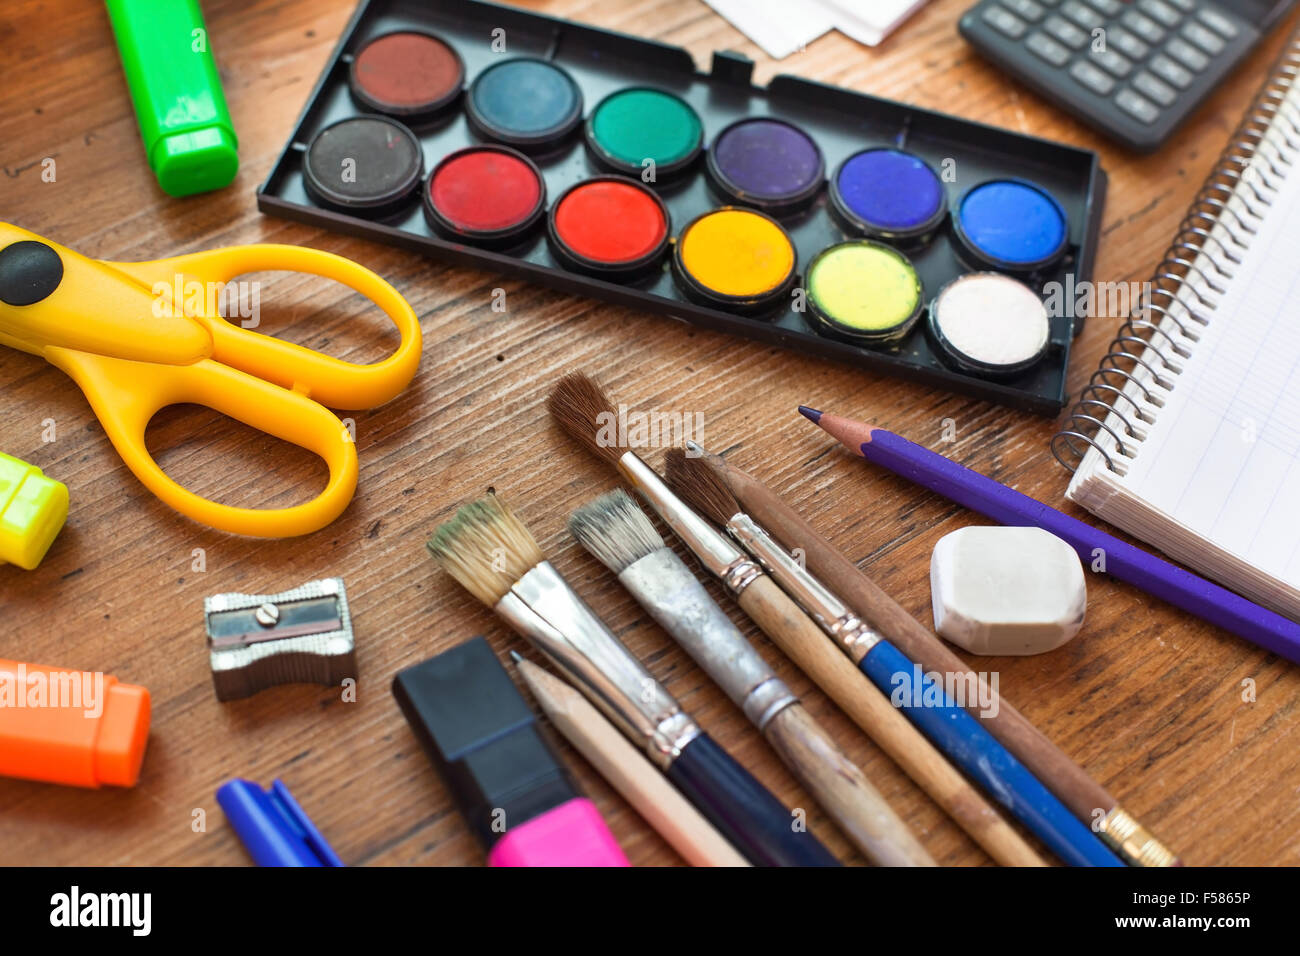 school supplies on wooden table - Stock Image